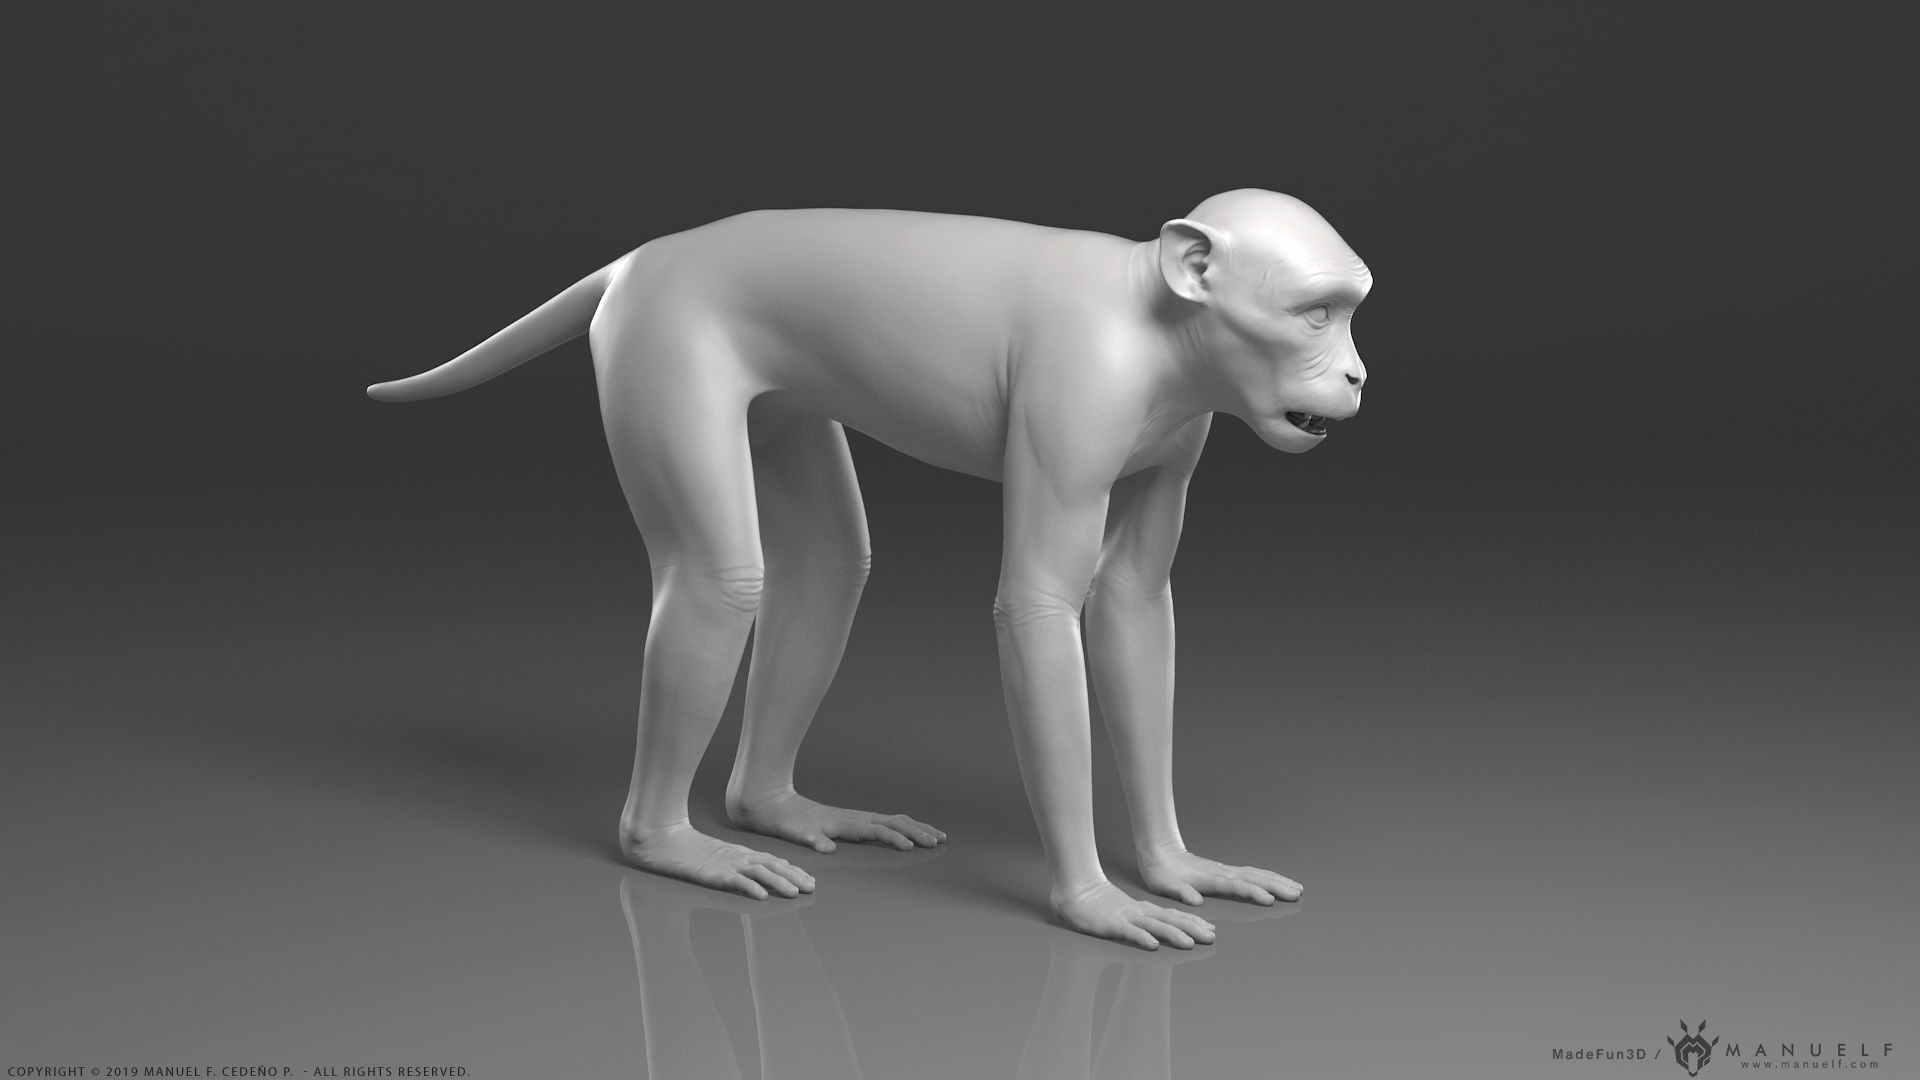 Rhesus Macaque Monkey - Highpoly Sculpture